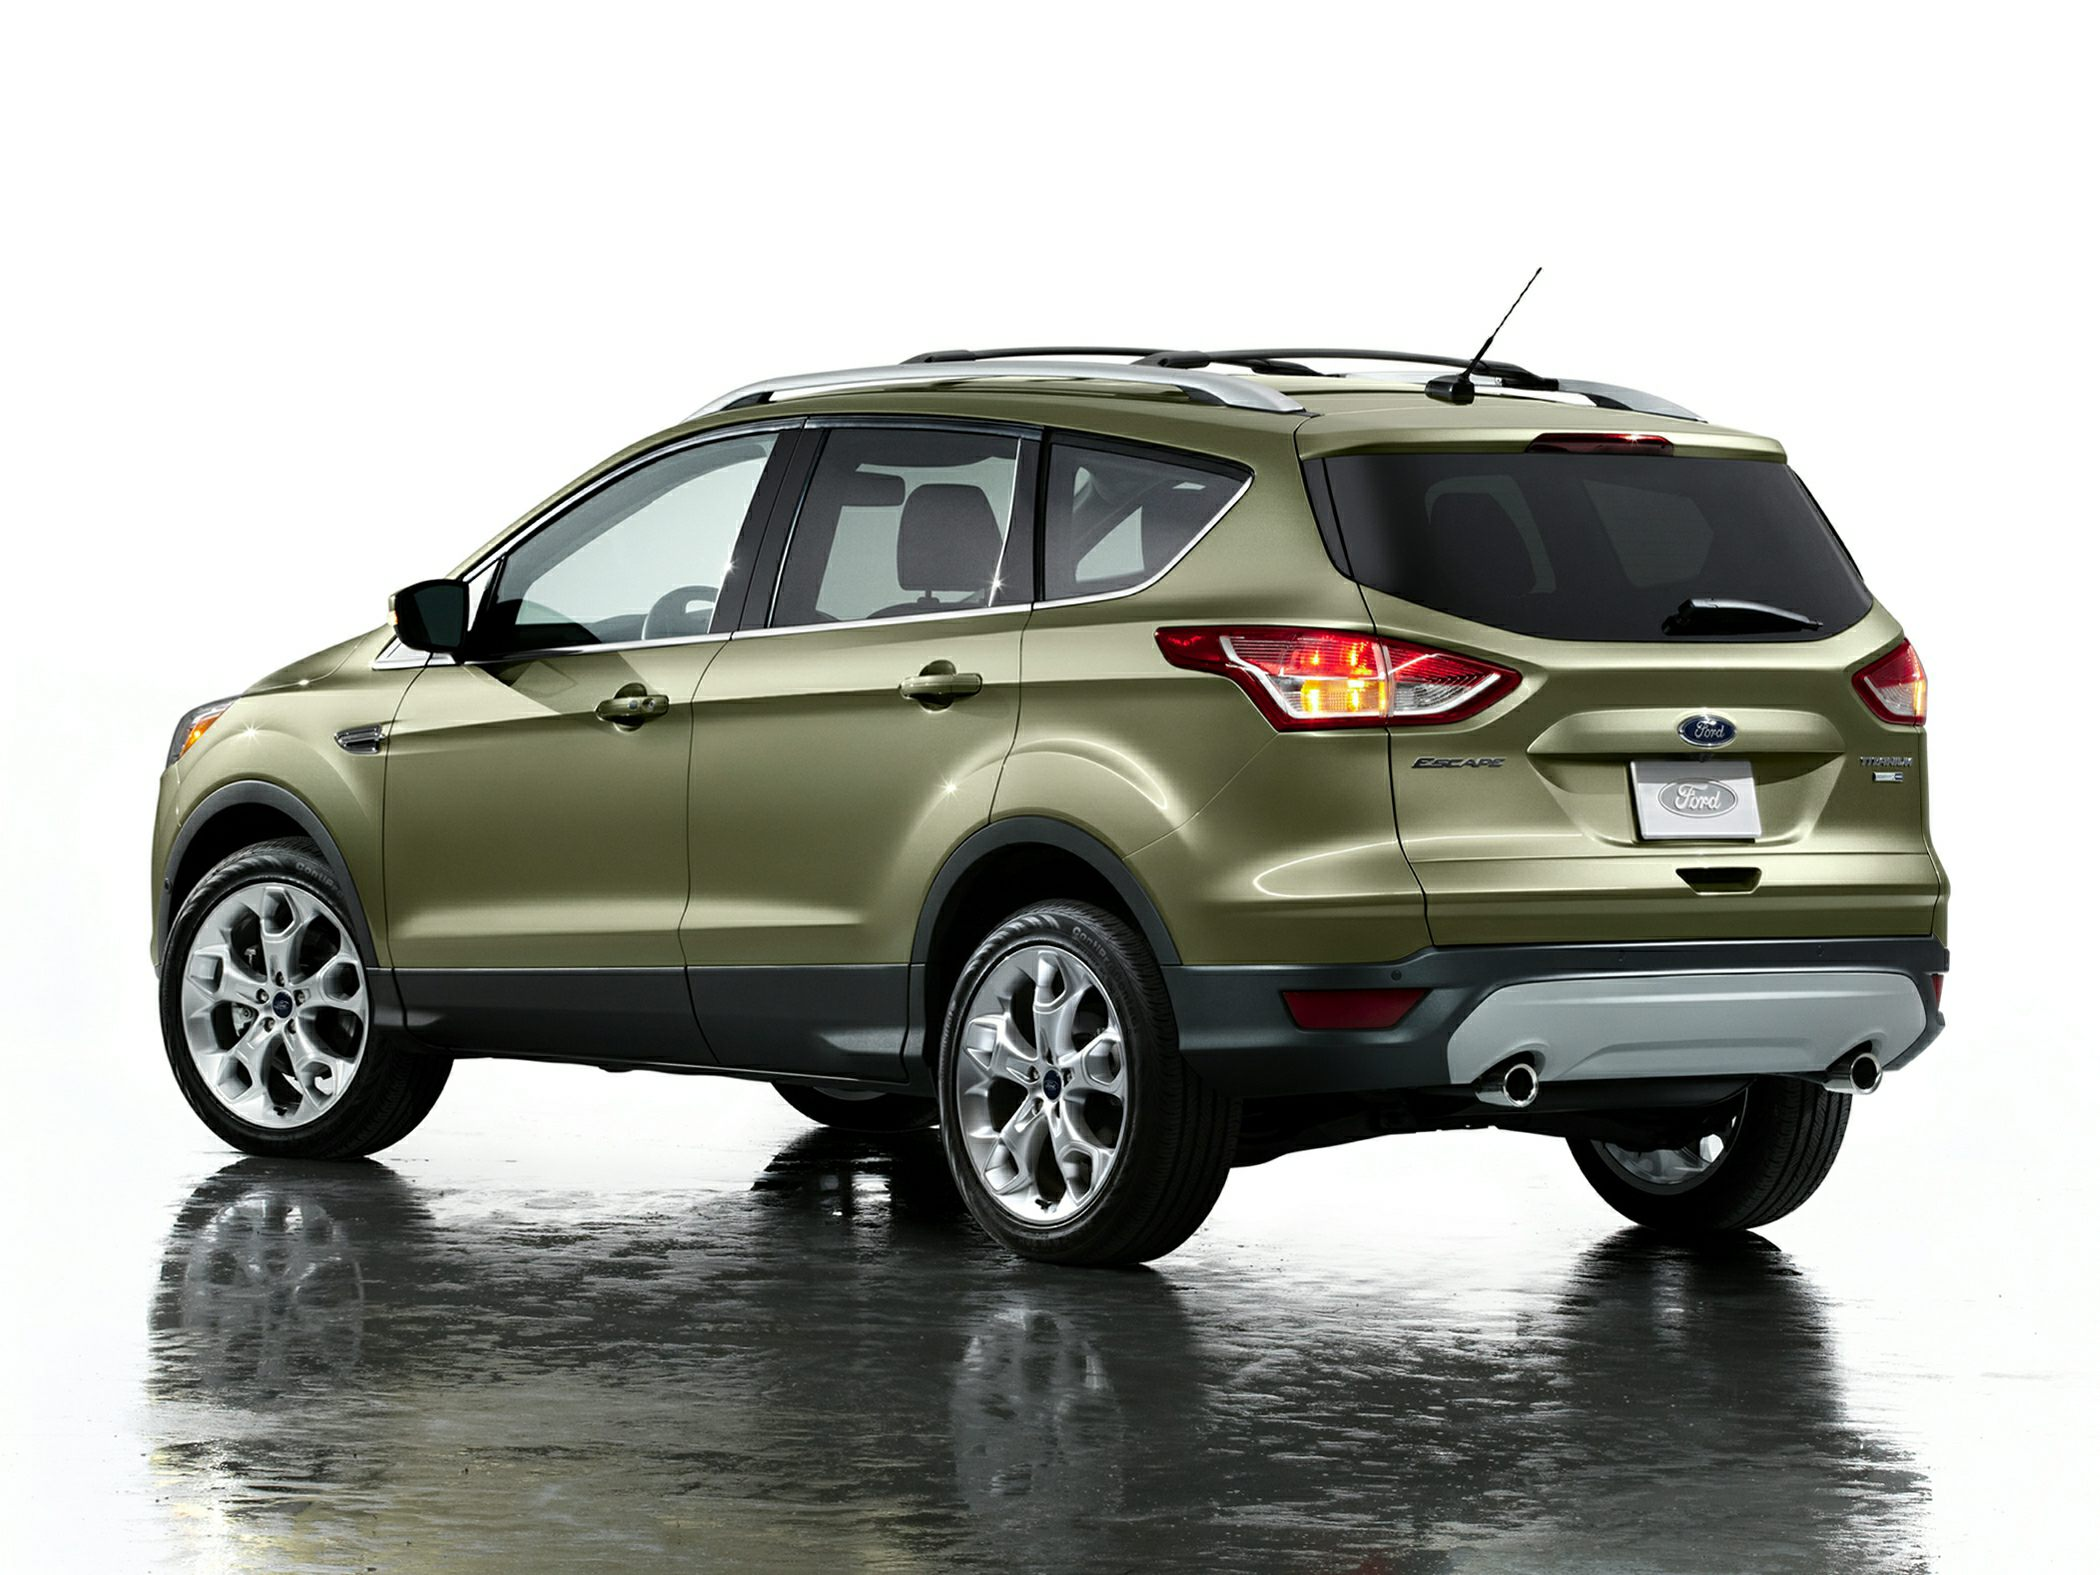 2014 ford escape photos informations articles for Ford escape exterior colors 2014